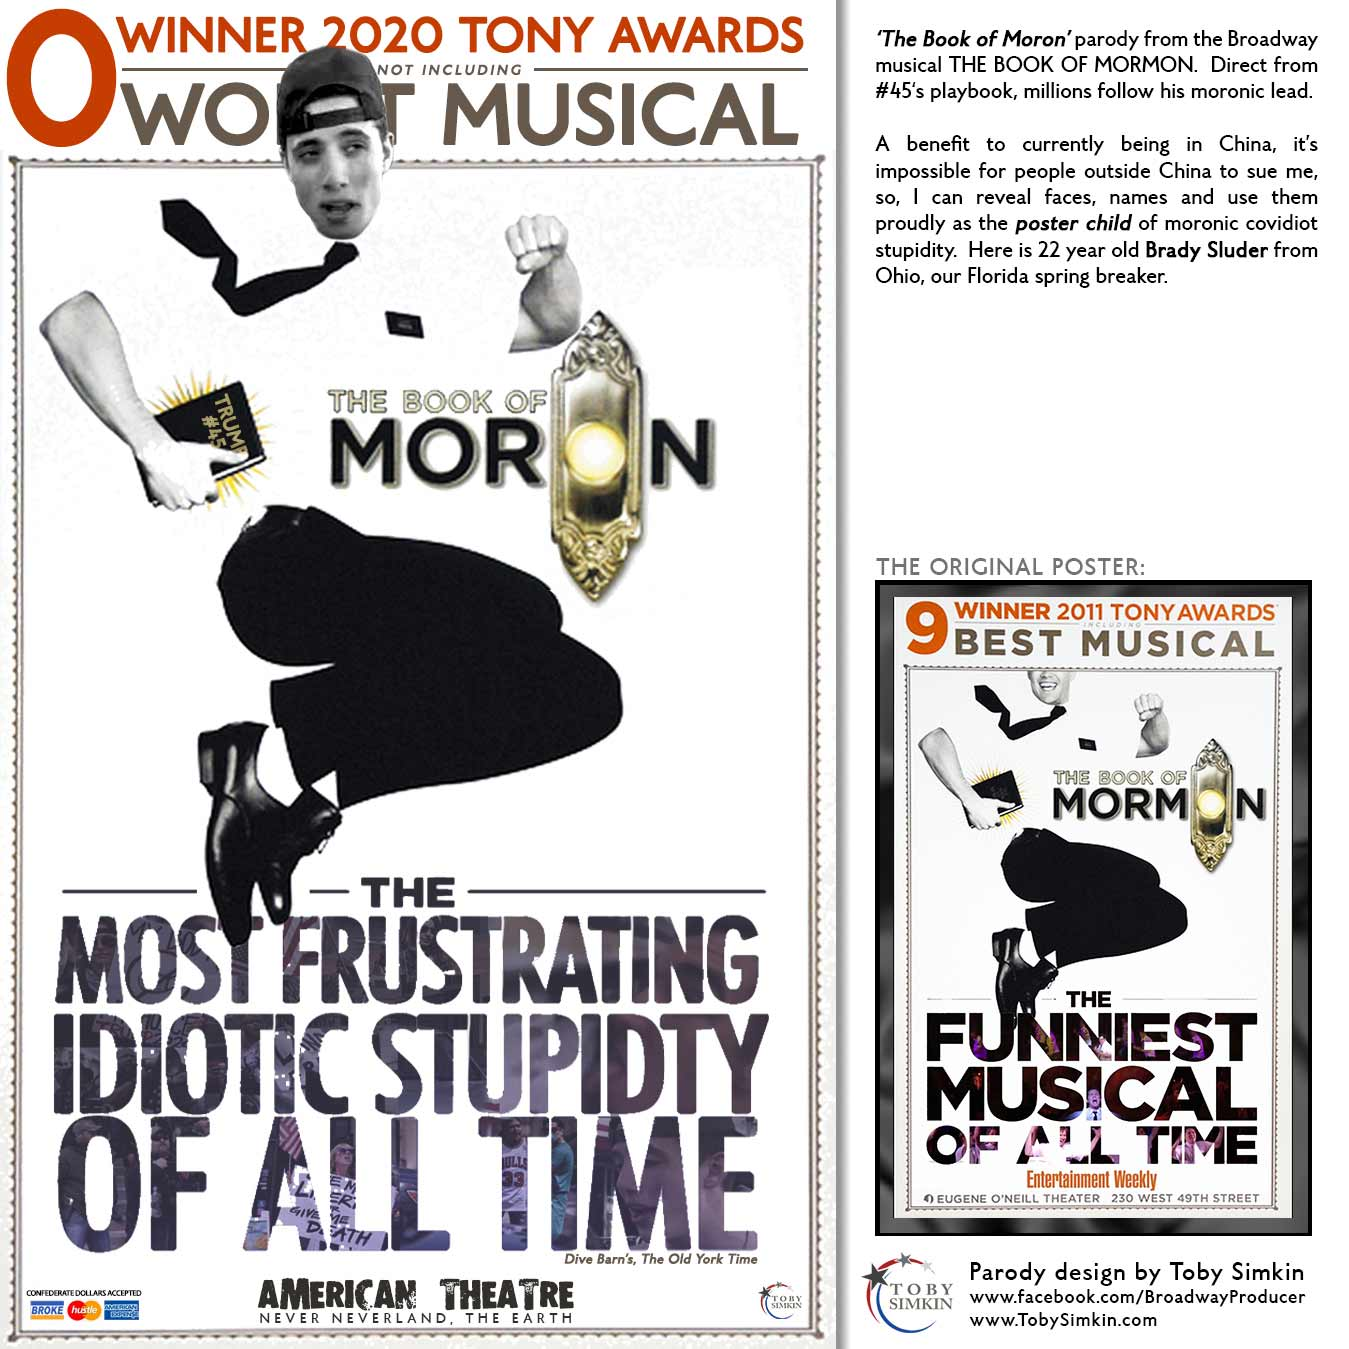 parody from the Broadway musical THE BOOK OF MORMON